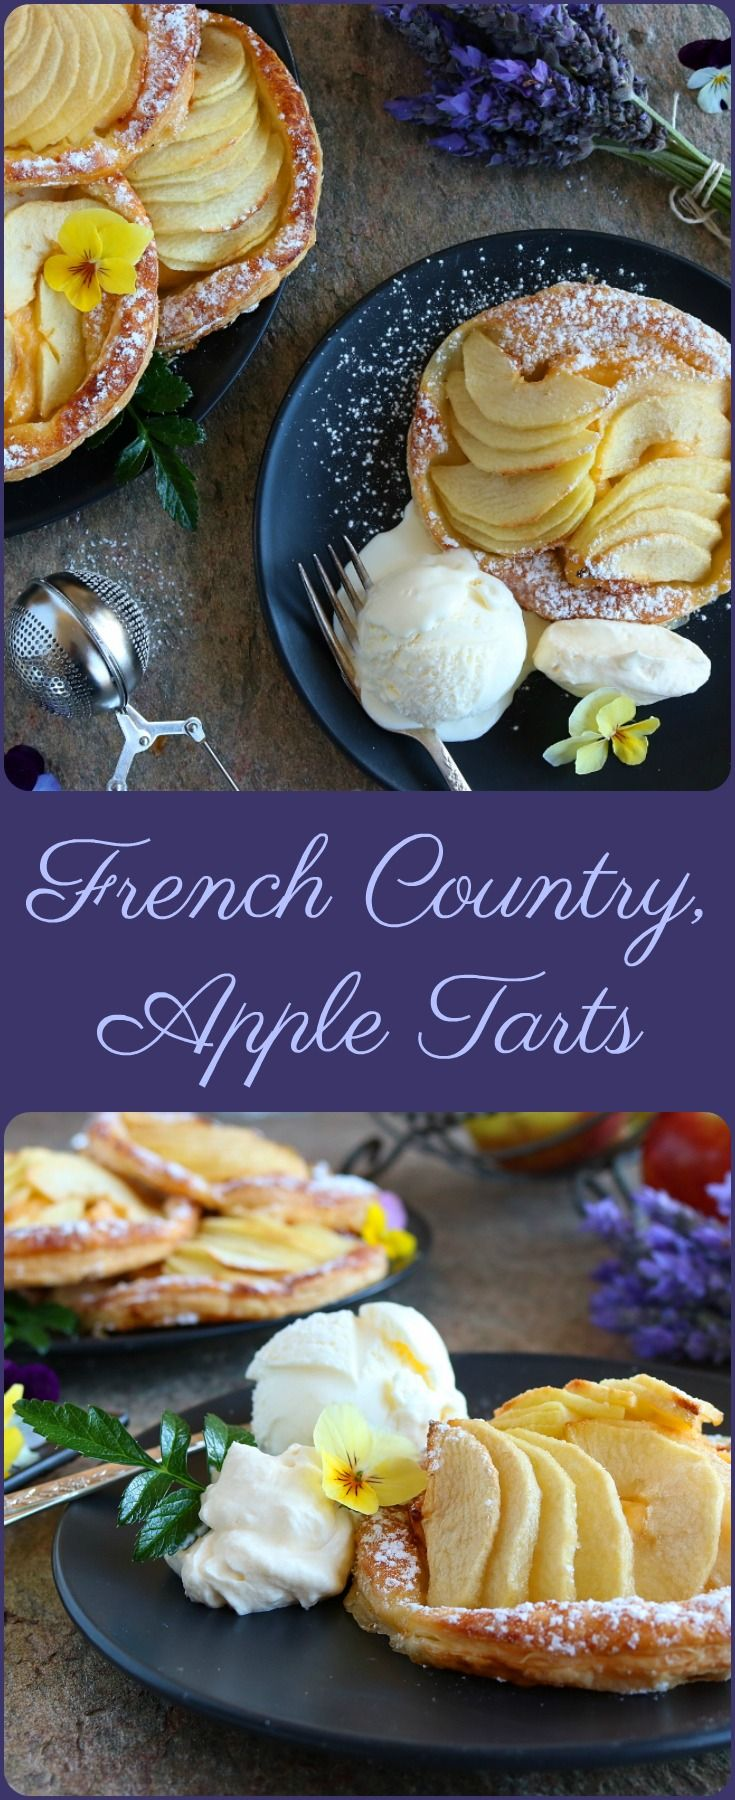 French Country, Apple Tarts